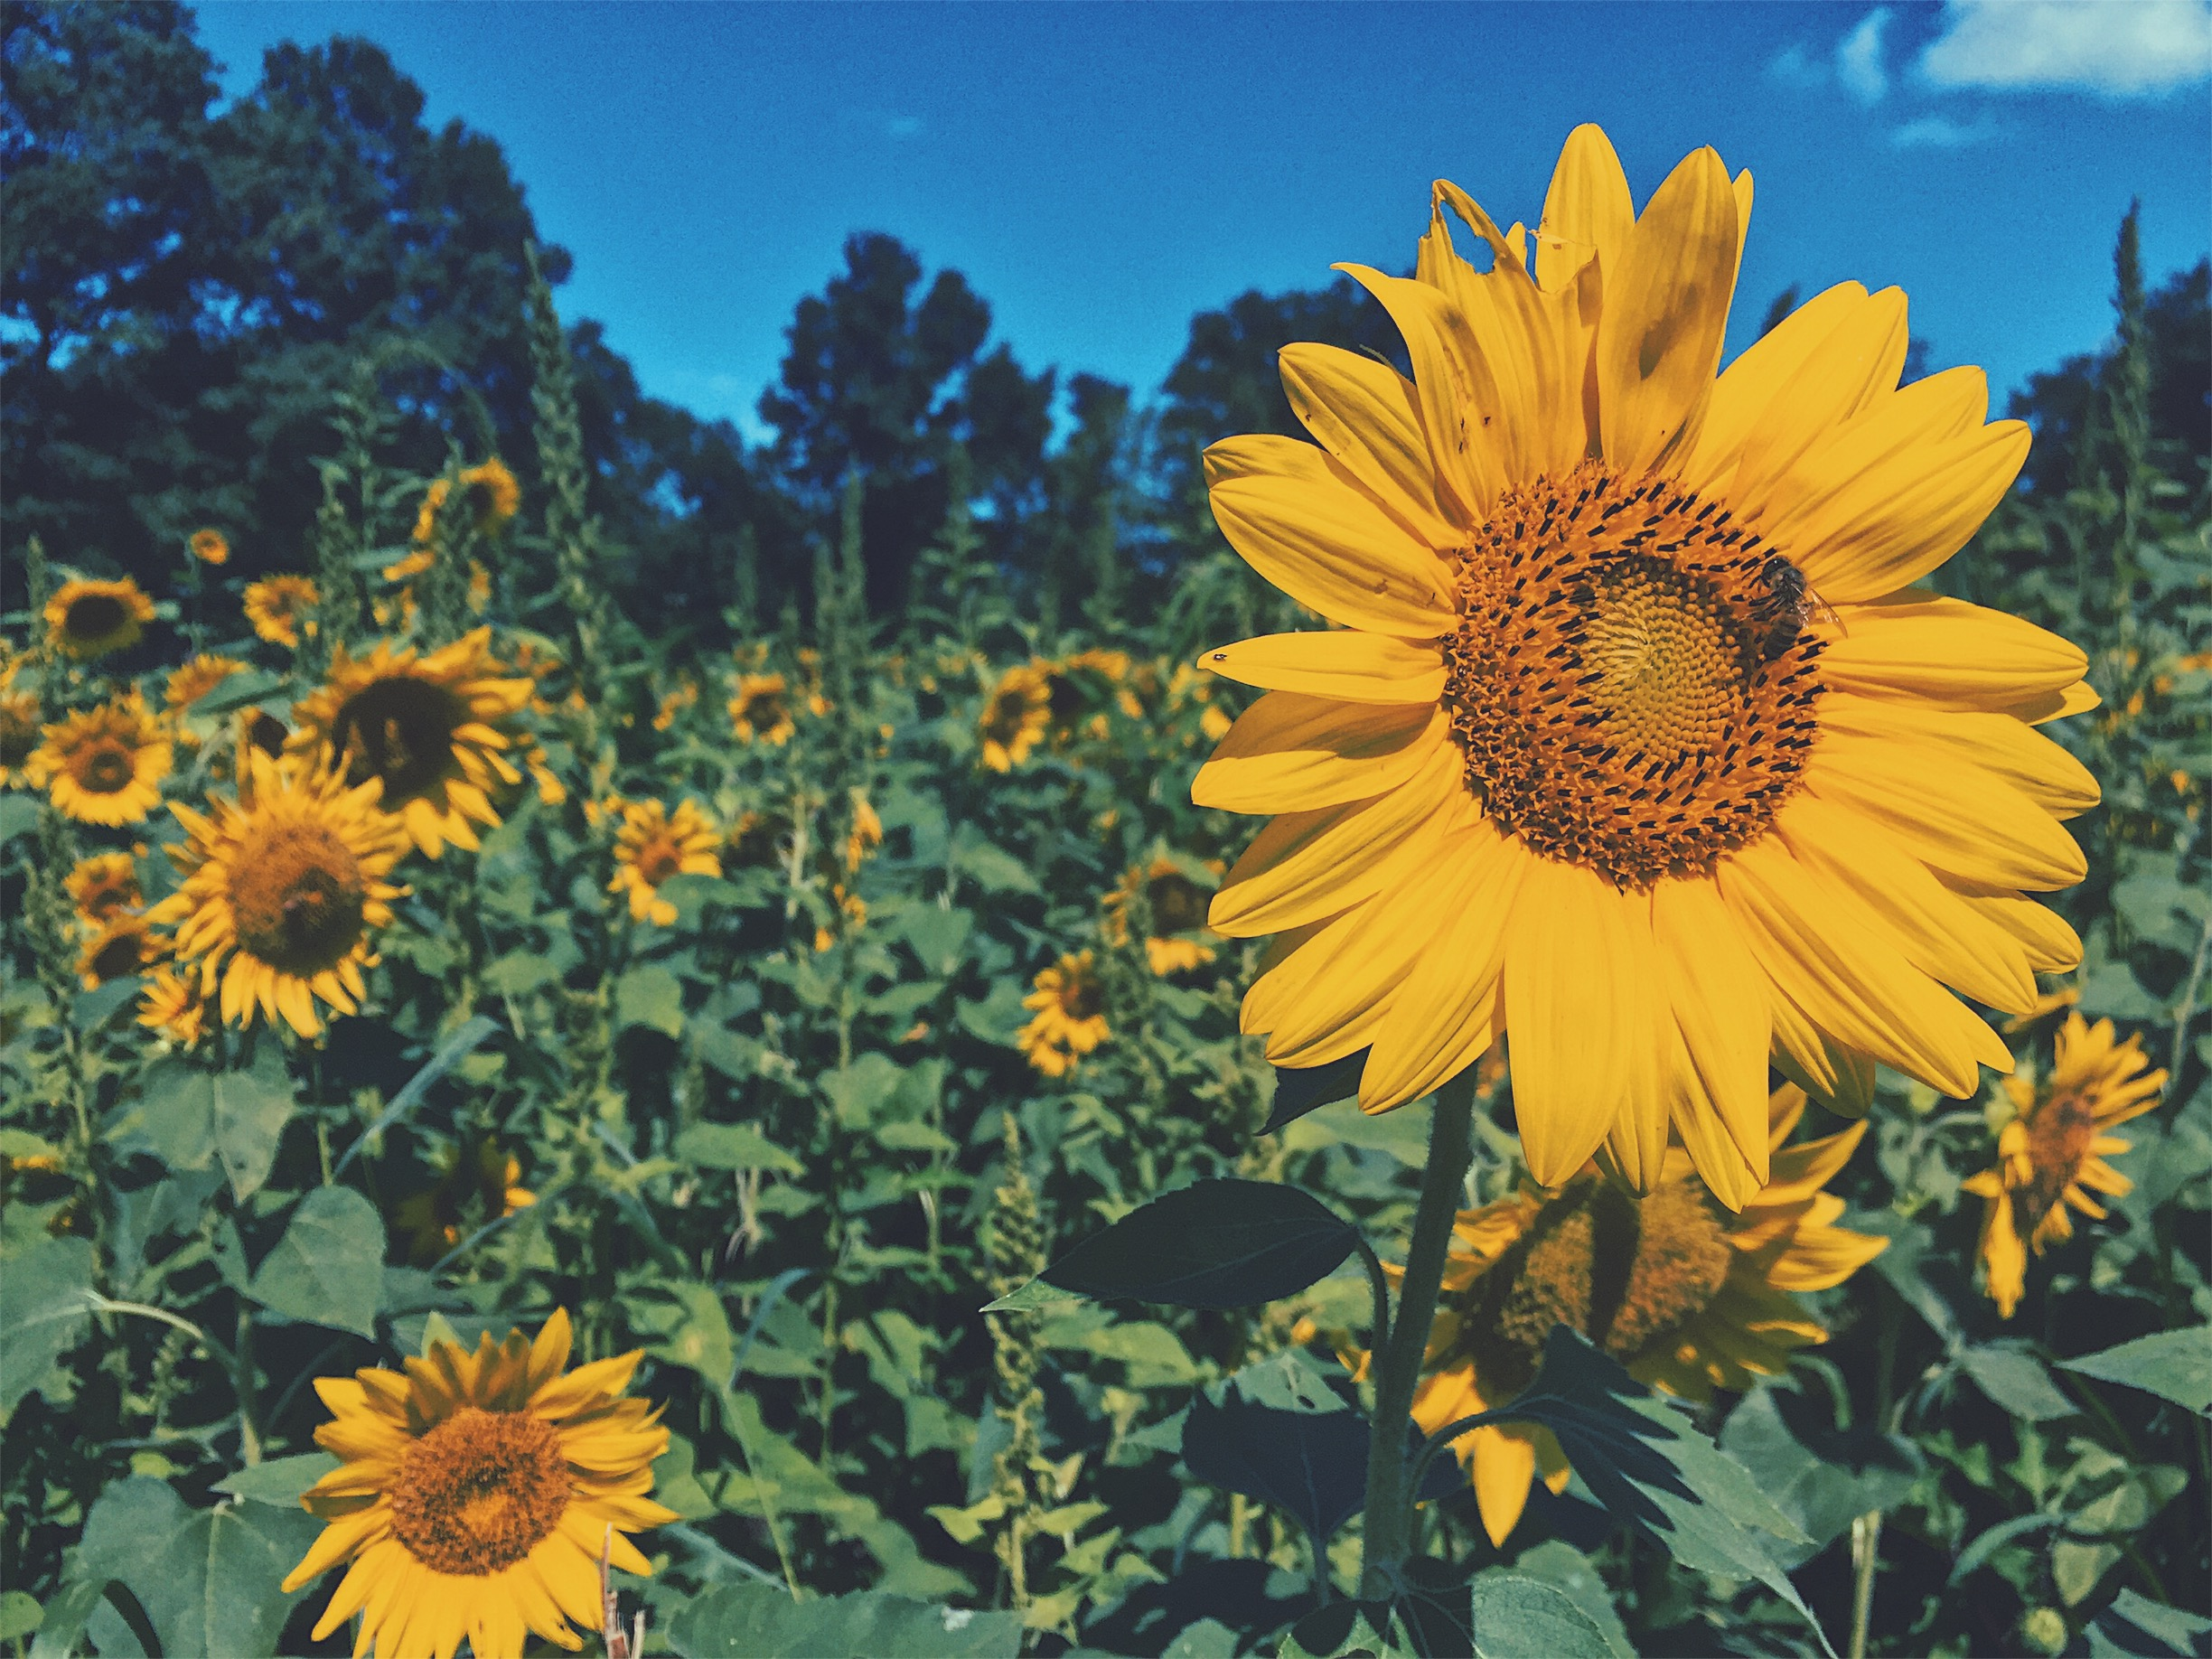 Processed with VSCO with p4 preset – The Sunflower Child